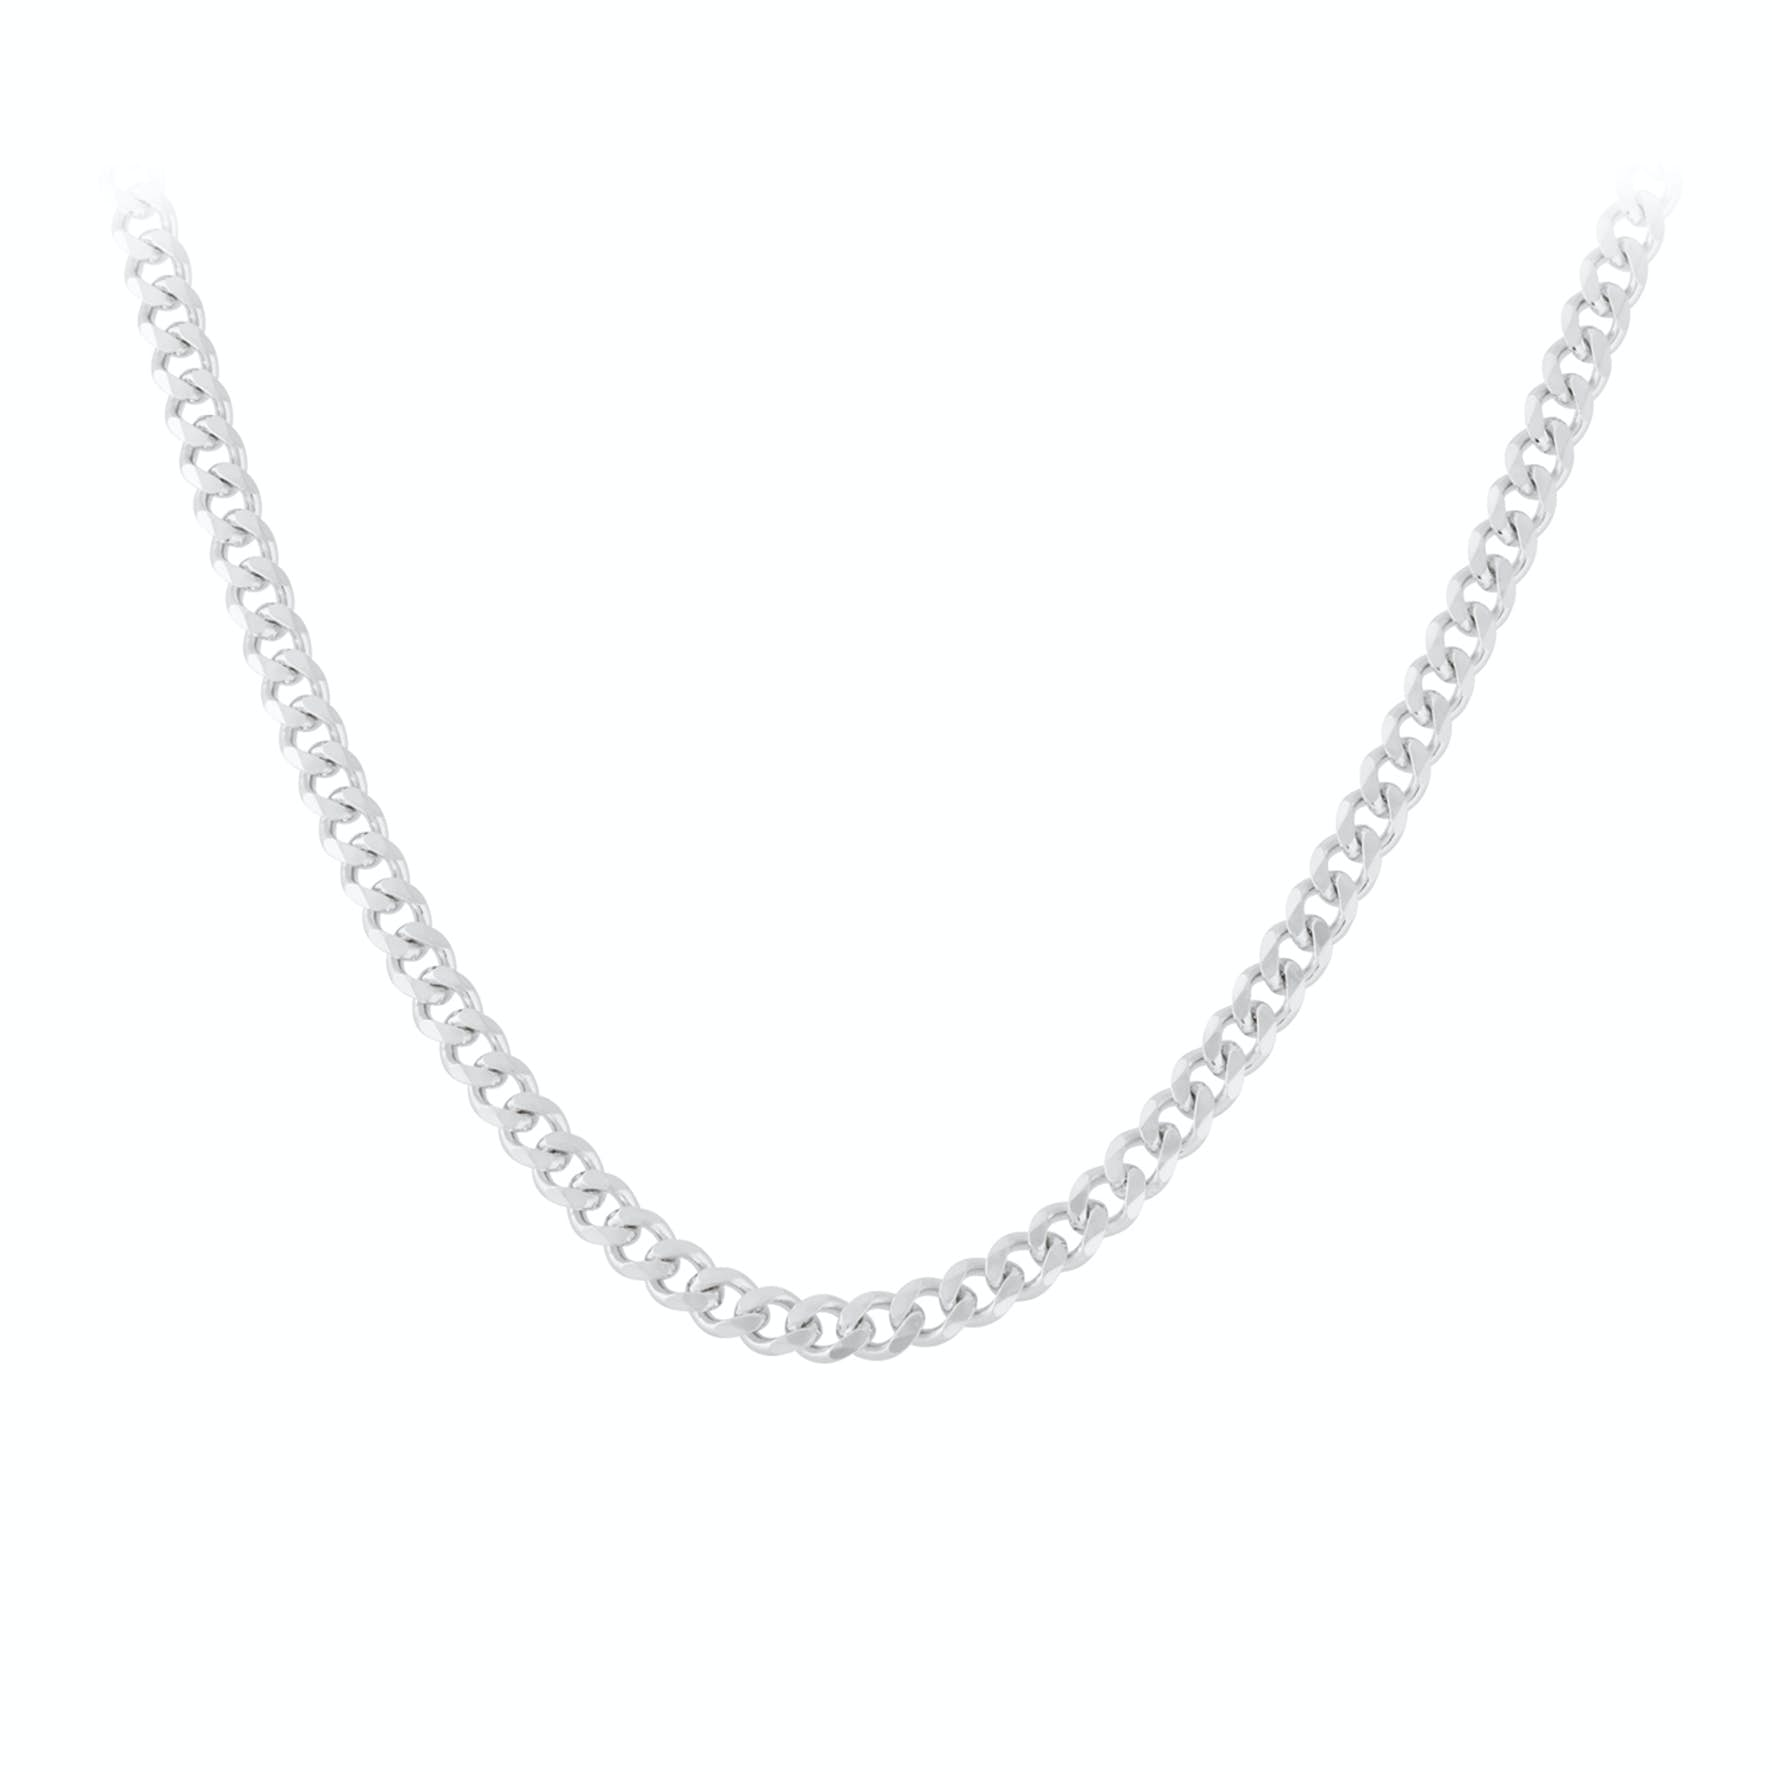 Solid Necklace Short von Pernille Corydon in Silber Sterling 925